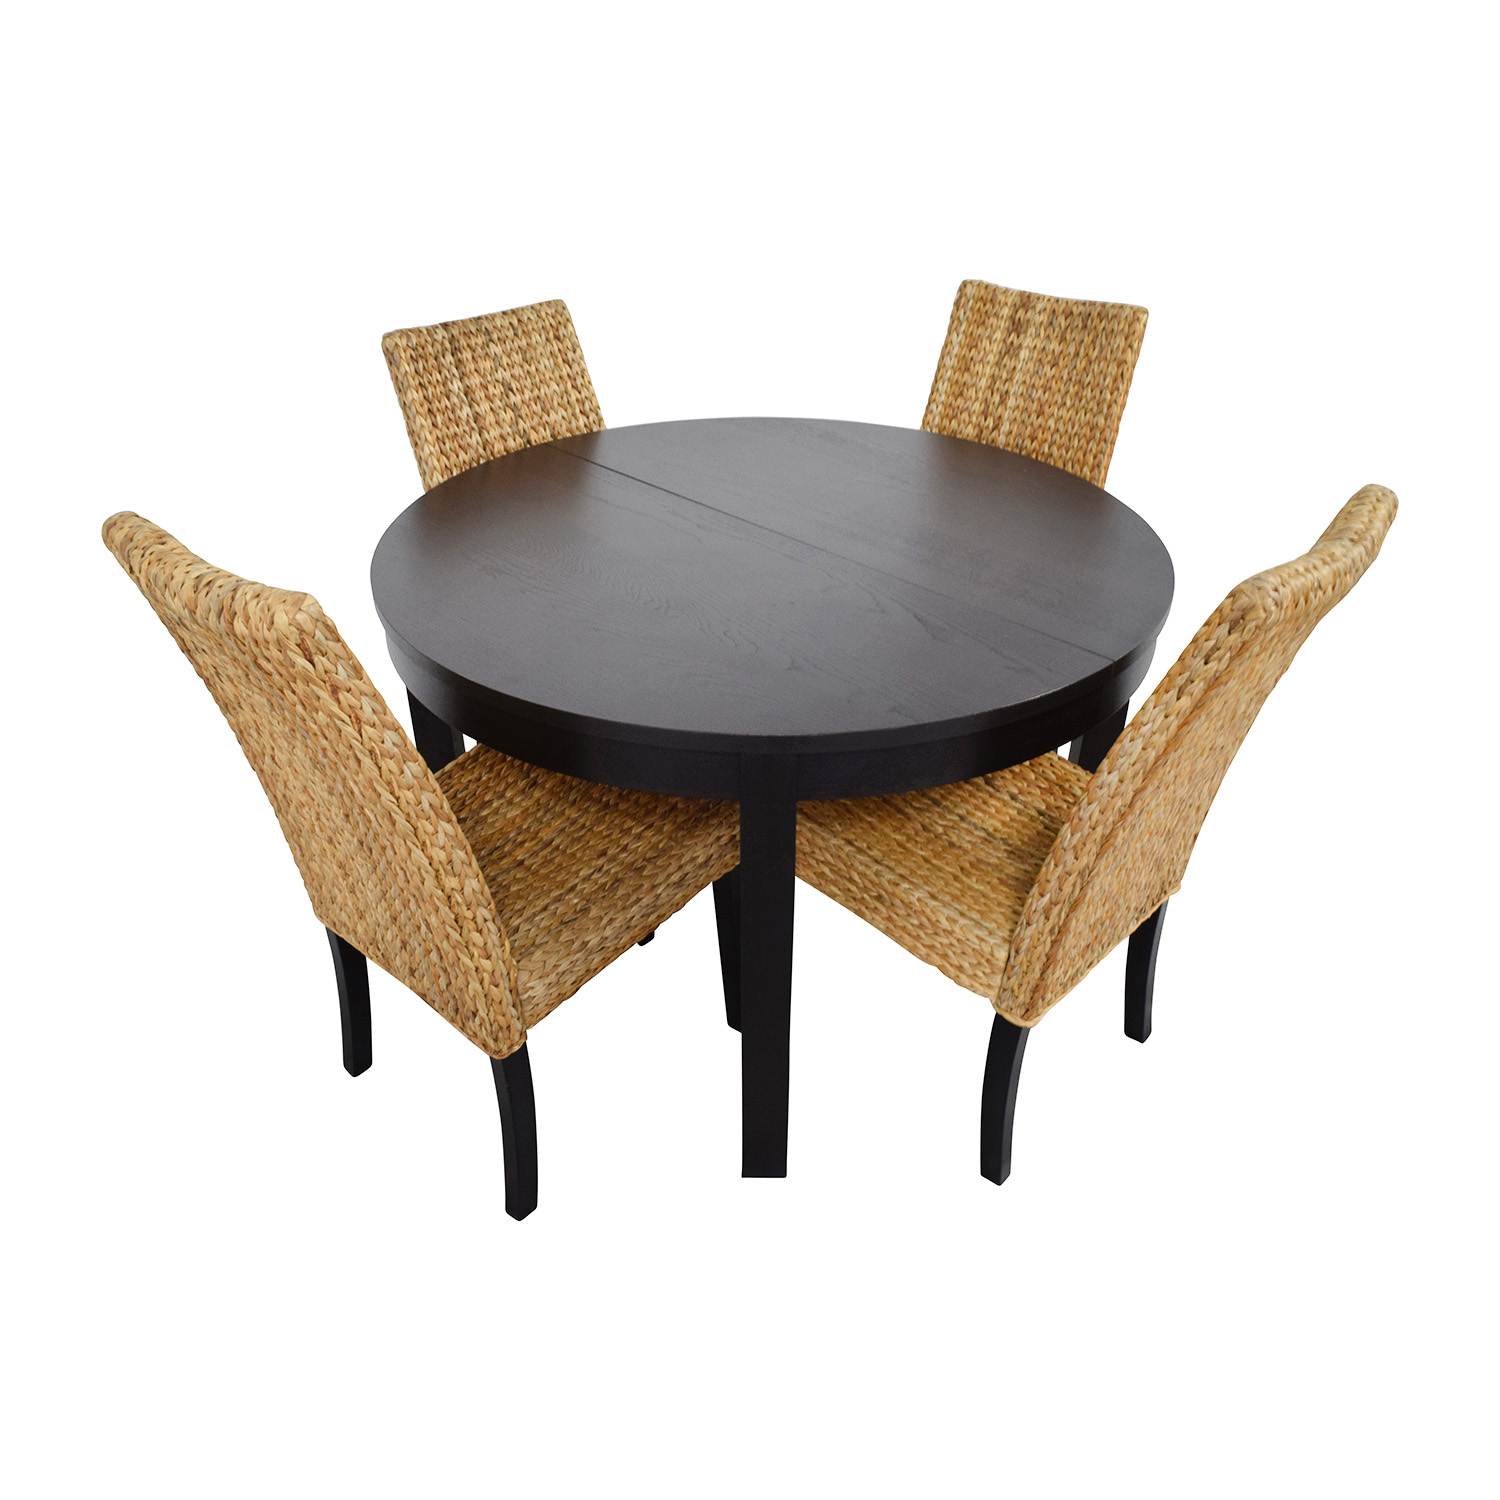 macys dining chairs chicco high 66 off macy 39s and ikea round black table set with